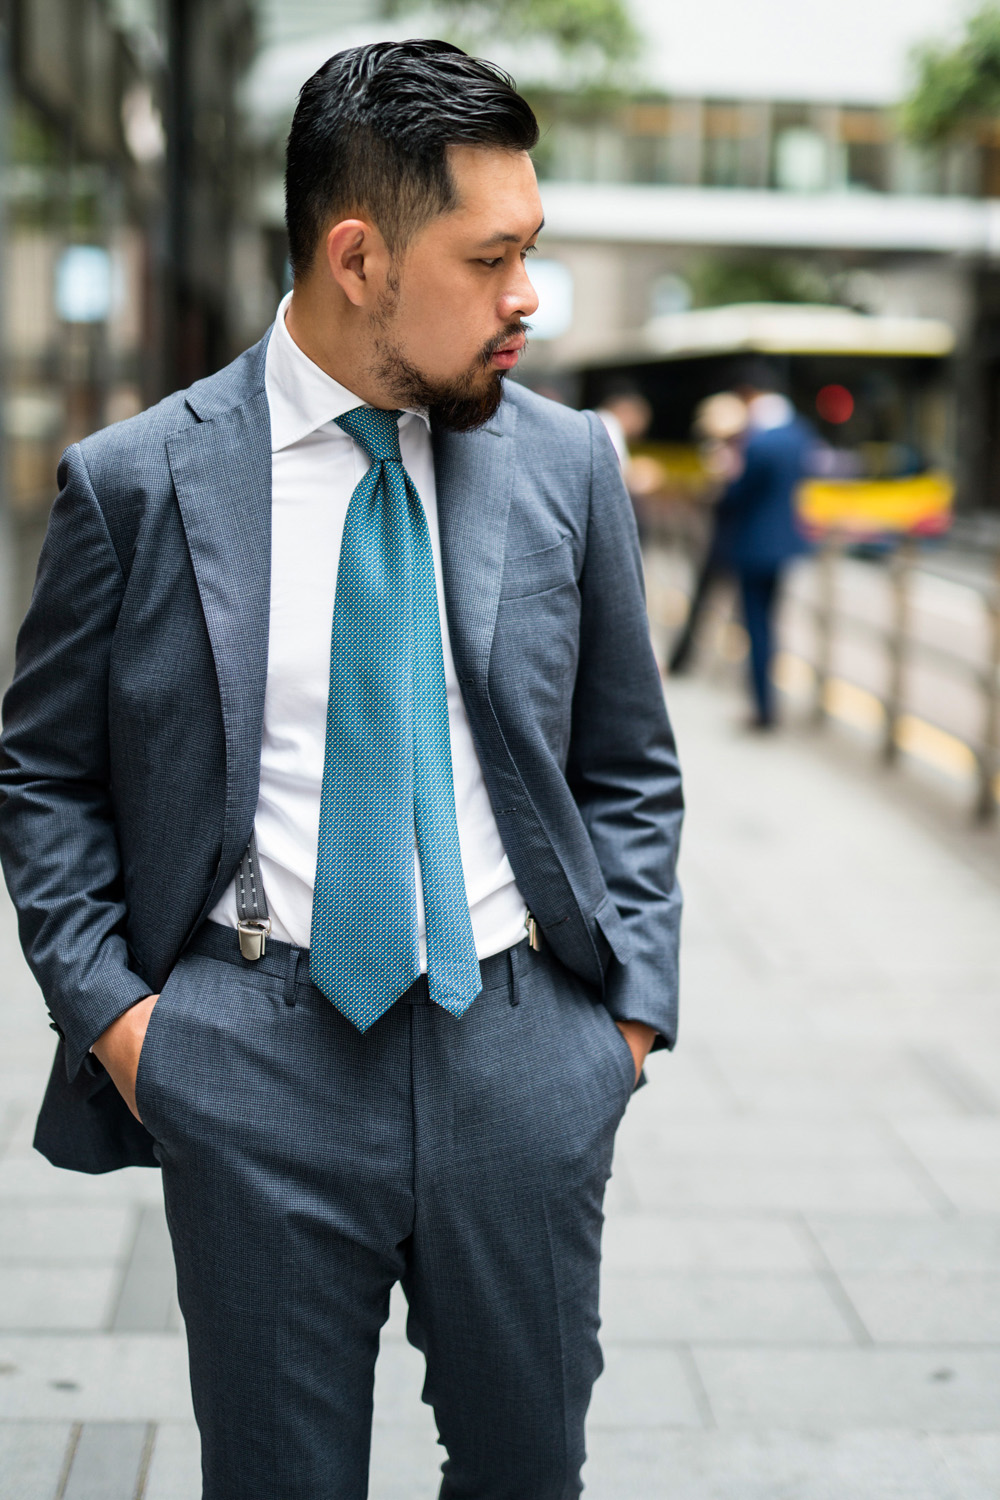 Shades of Blue – The Armoury